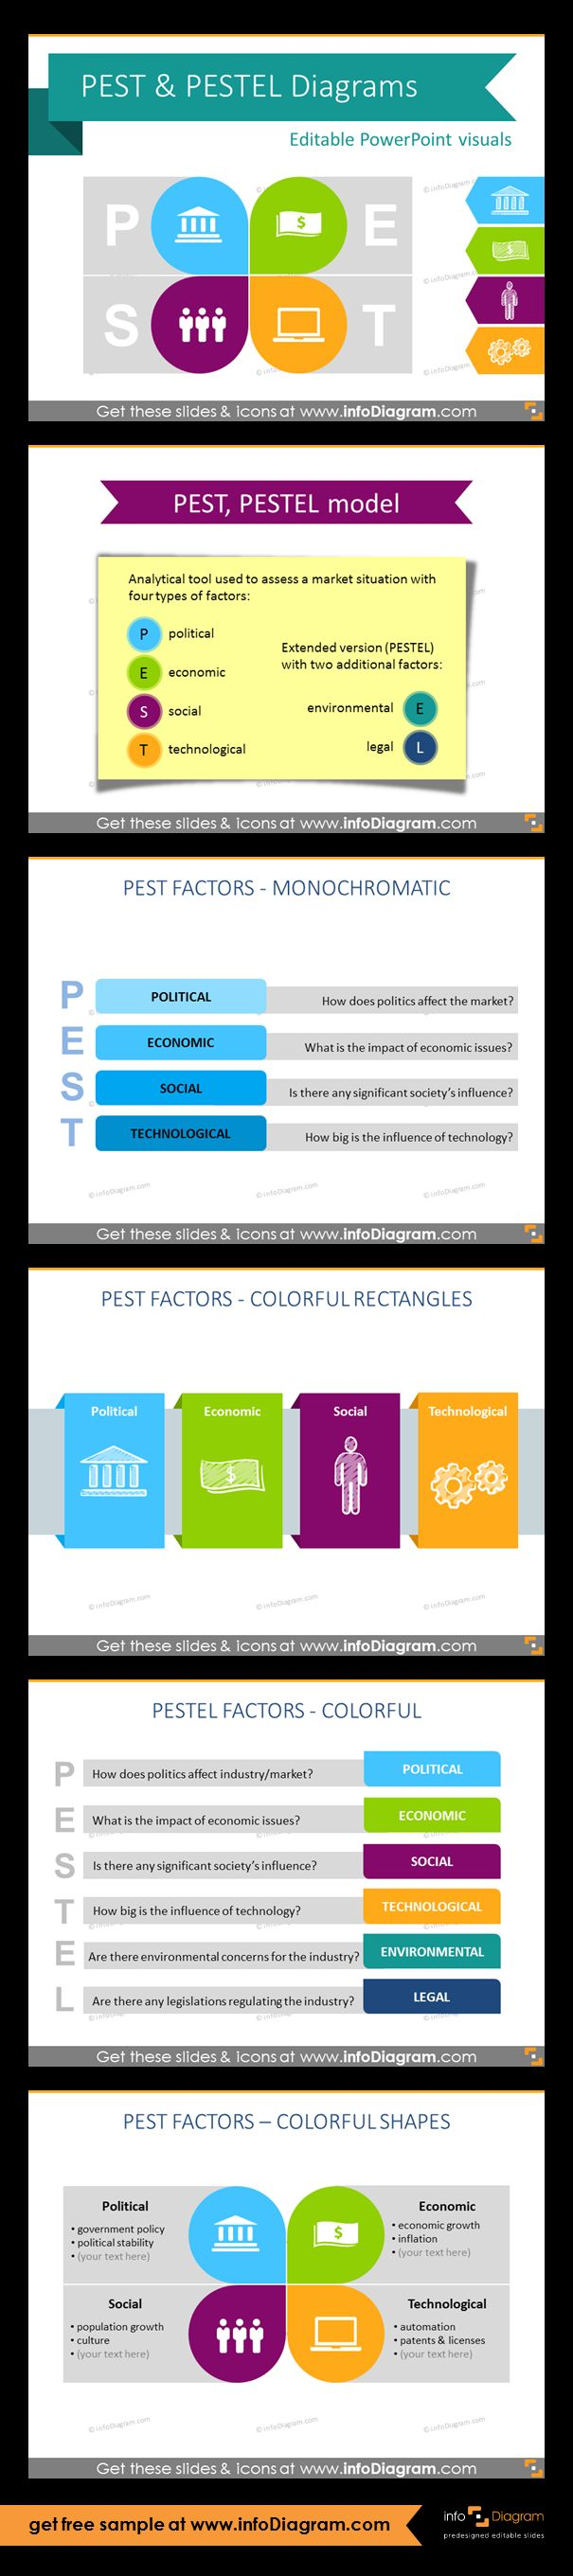 A collection of PEST and PESTEL model diagrams as pre-designed PowerPoint slides. Exemplary definition, PEST factors in different variations: monochromatic, colorful rectangles, colorful rows and shapes. Fully editable style. Size and colors easy to adjust using PowerPoint editor. Presentation template suitable for business analysis and strategy planning presentations.